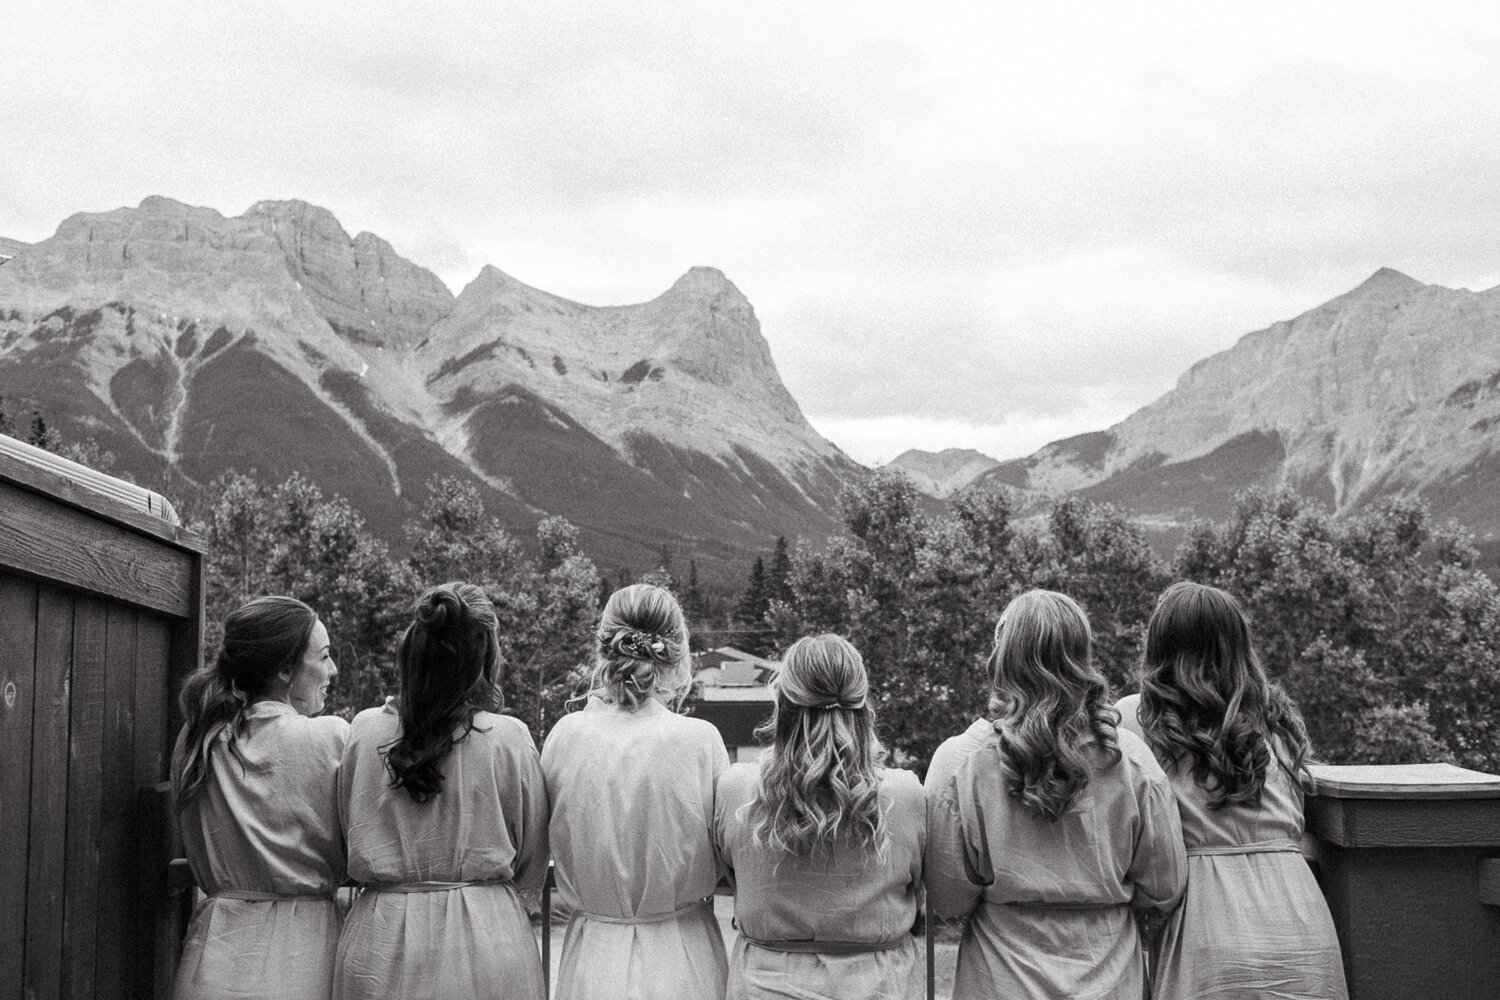 7-Canmore-Alberta-Real-Wedding-Best-Wedding-Photographers-15.JPG